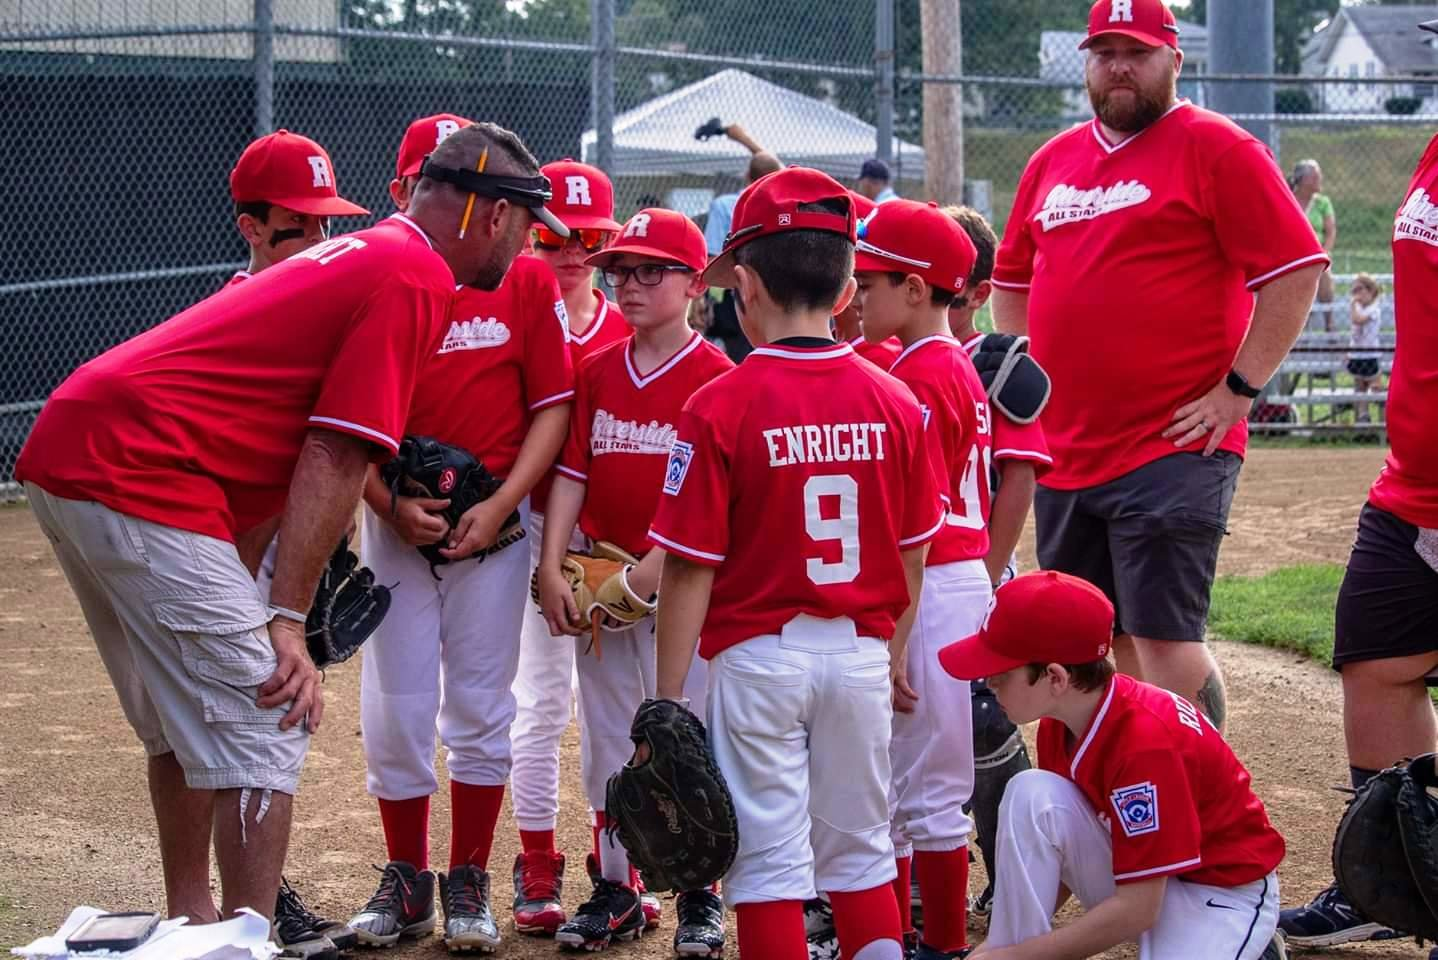 Riverside 9-10 All-Stars listening to Manager Vin Enright in tourney action